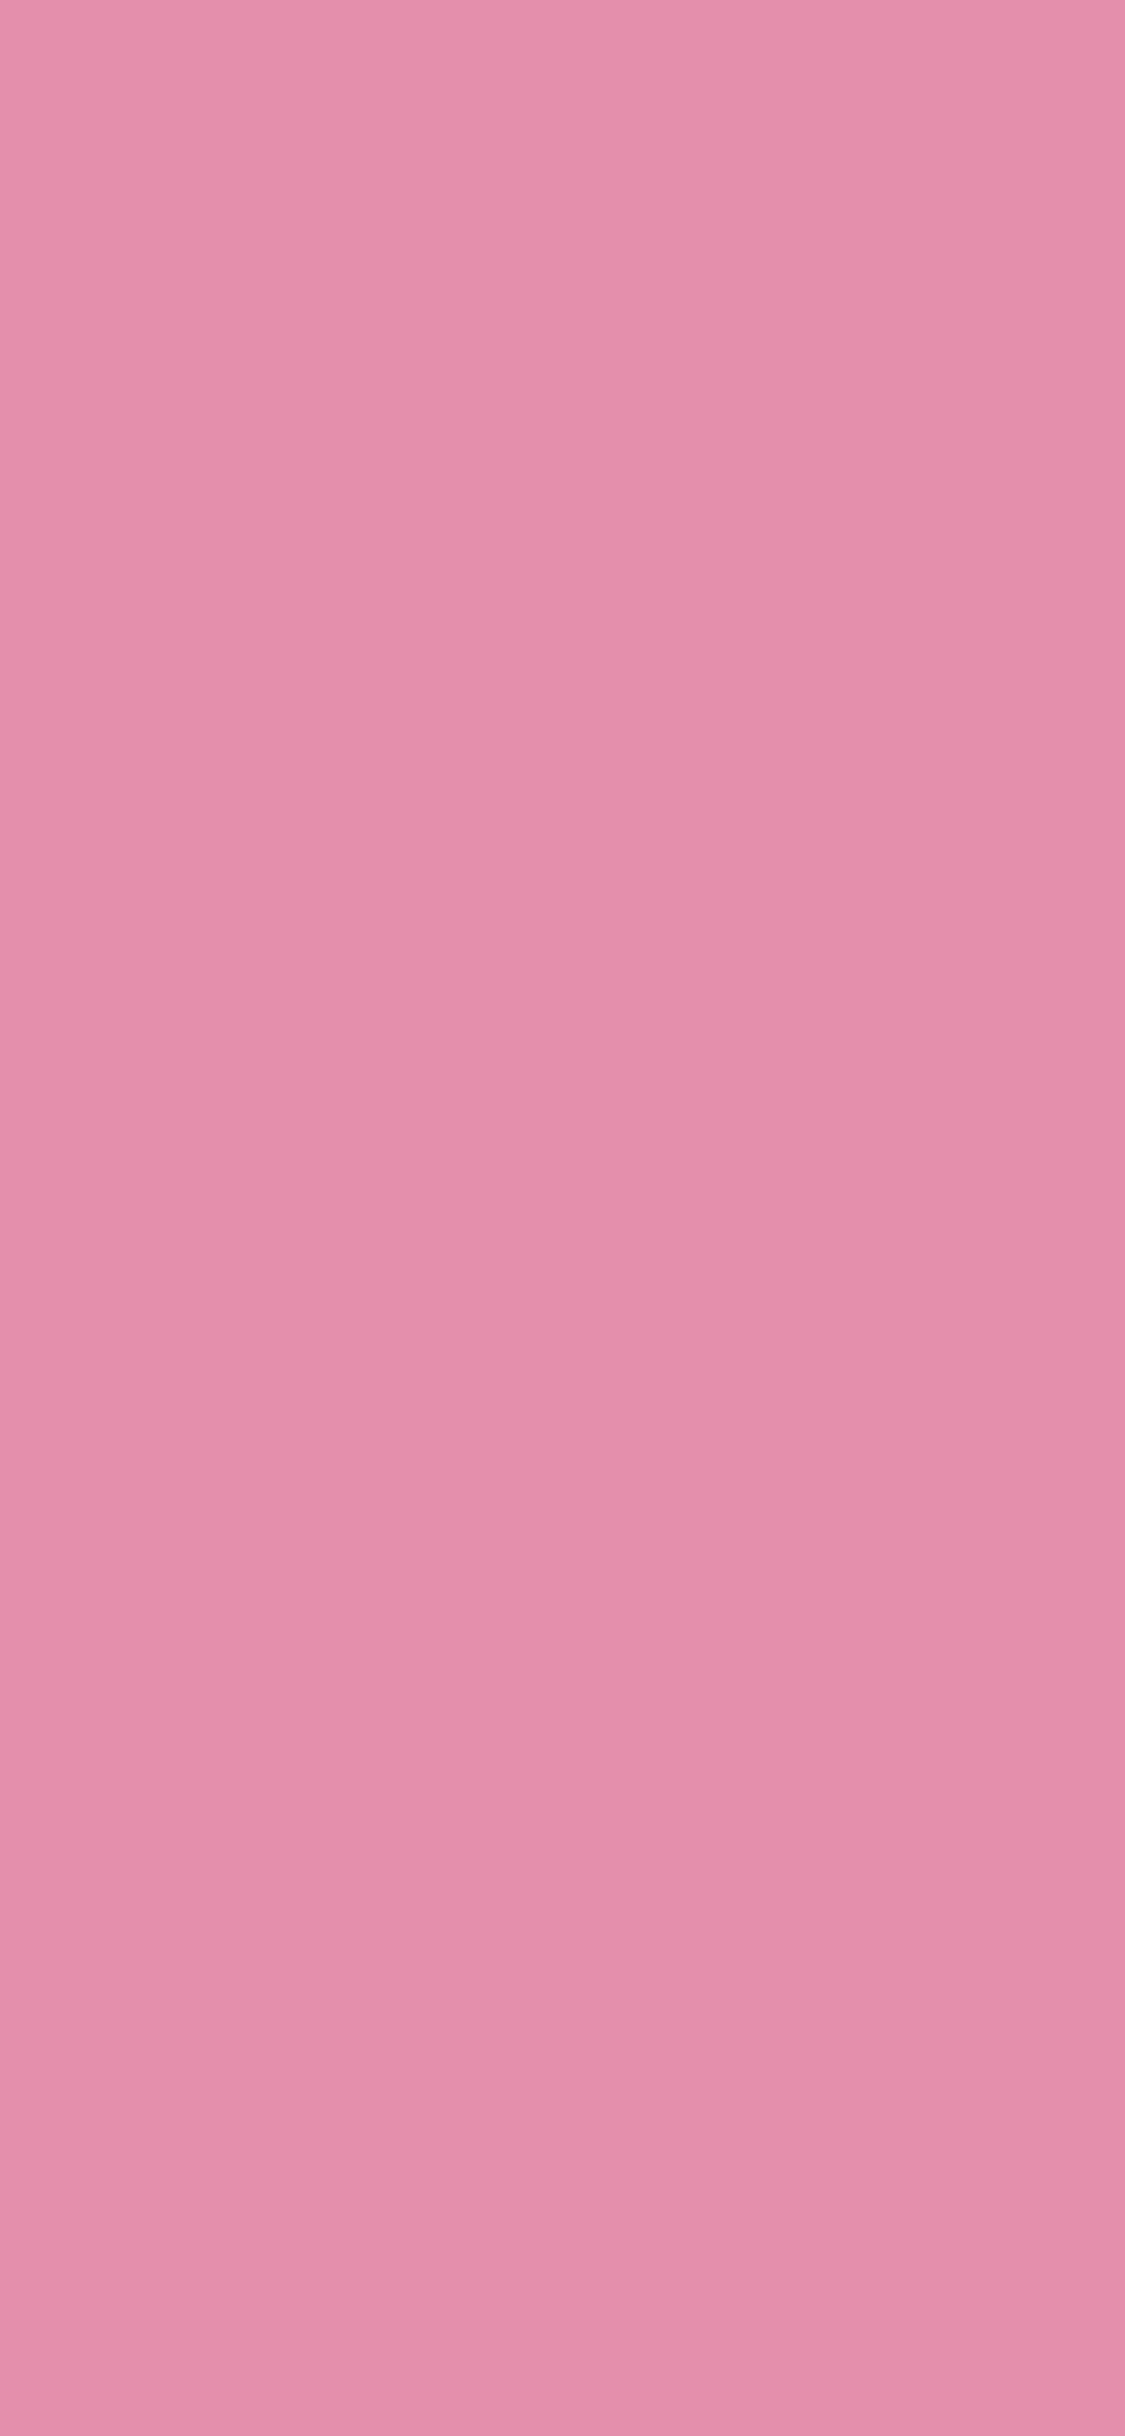 1125x2436 Light Thulian Pink Solid Color Background